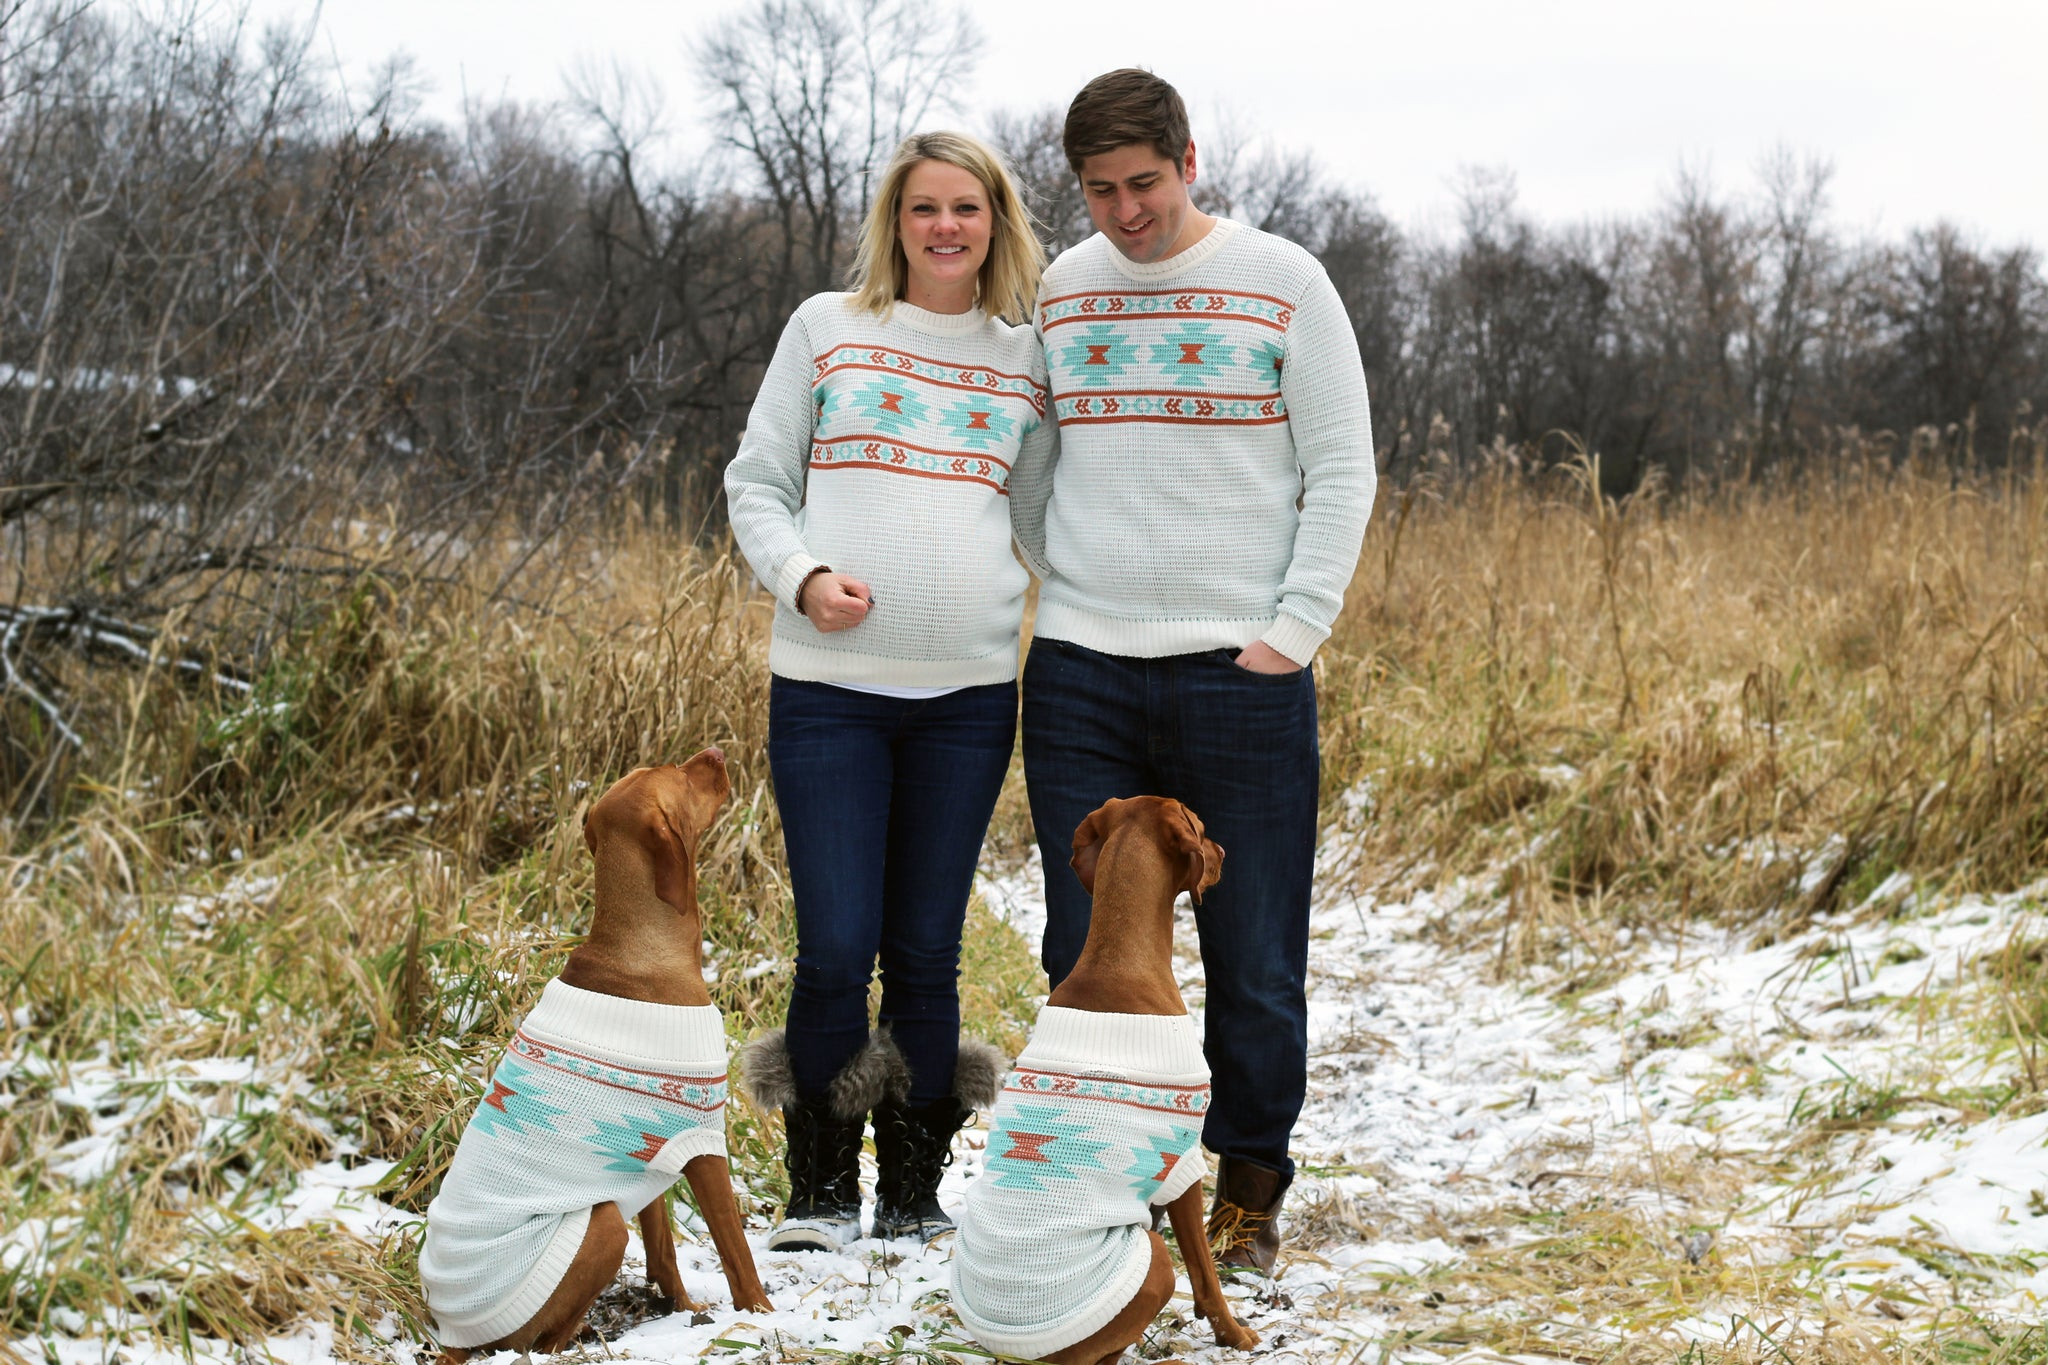 Matching Sweaters for Holiday Photos and Christmas - Dogs and People by Dog Threads x Squad Style